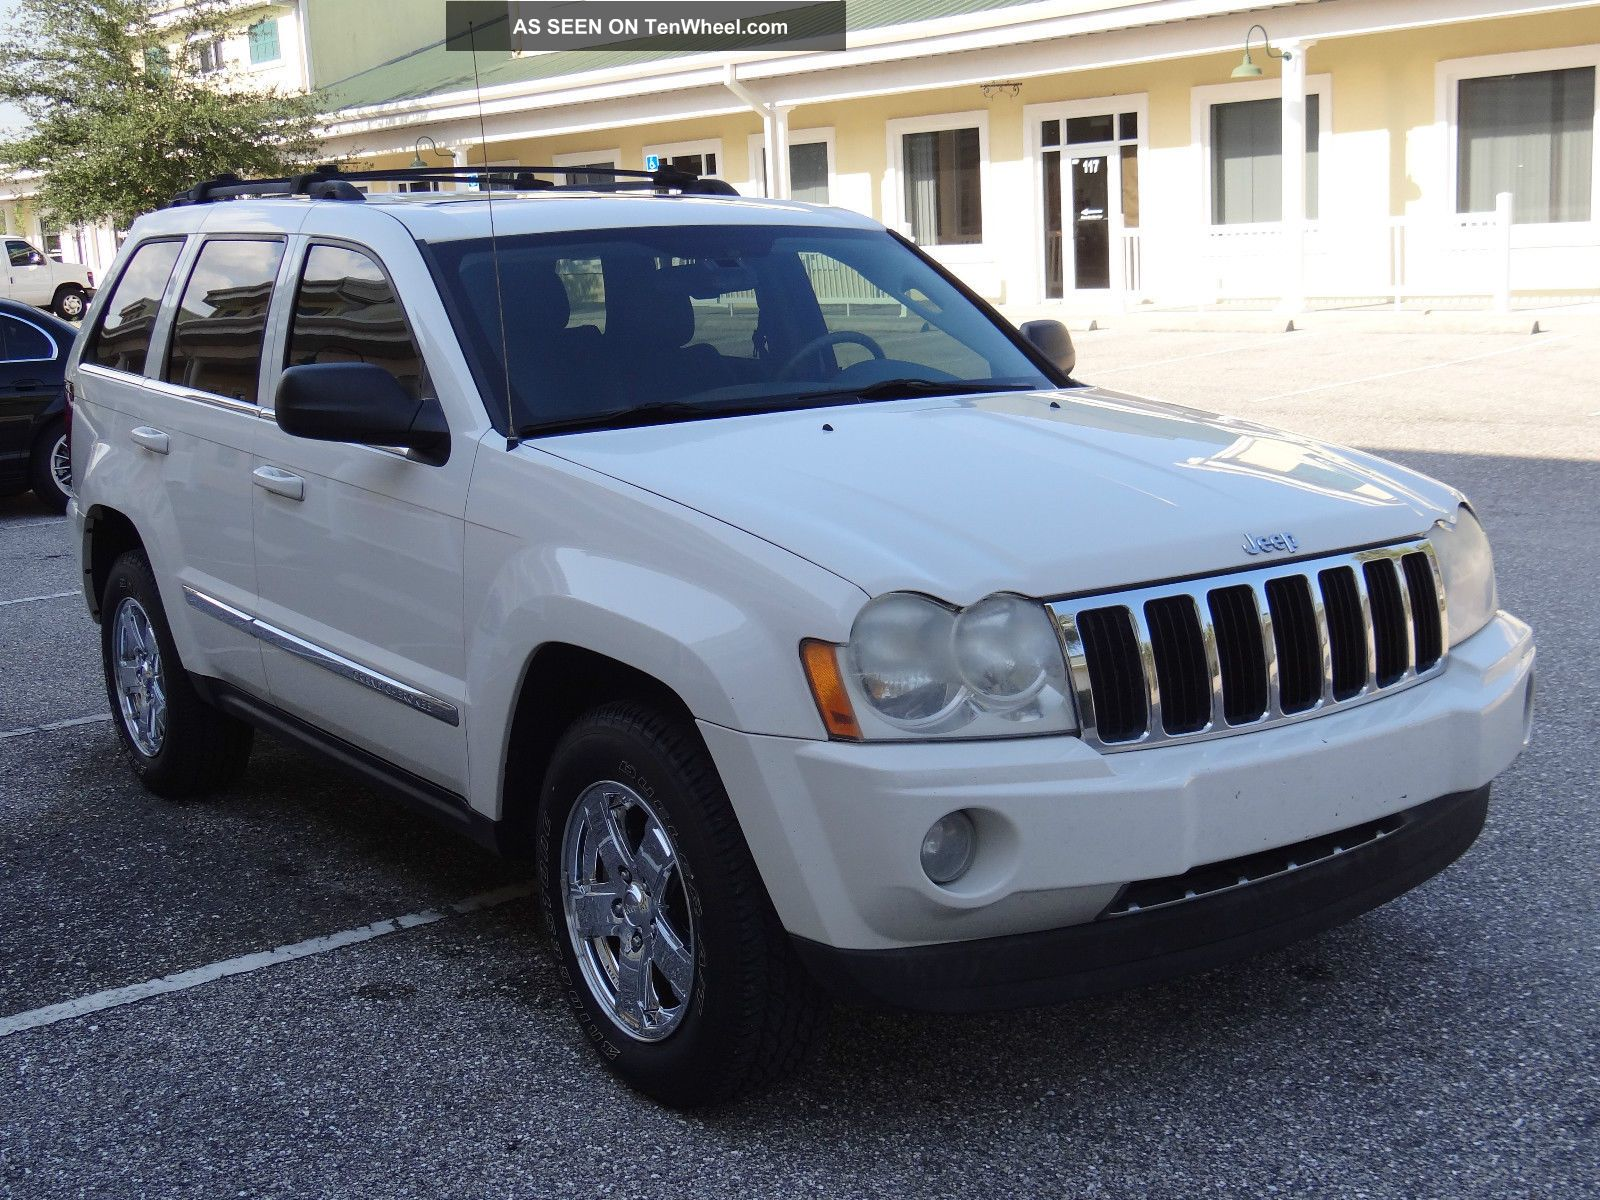 2007 jeep grand cherokee limitd 4x4 3 0 diesel florida car clear title. Black Bedroom Furniture Sets. Home Design Ideas